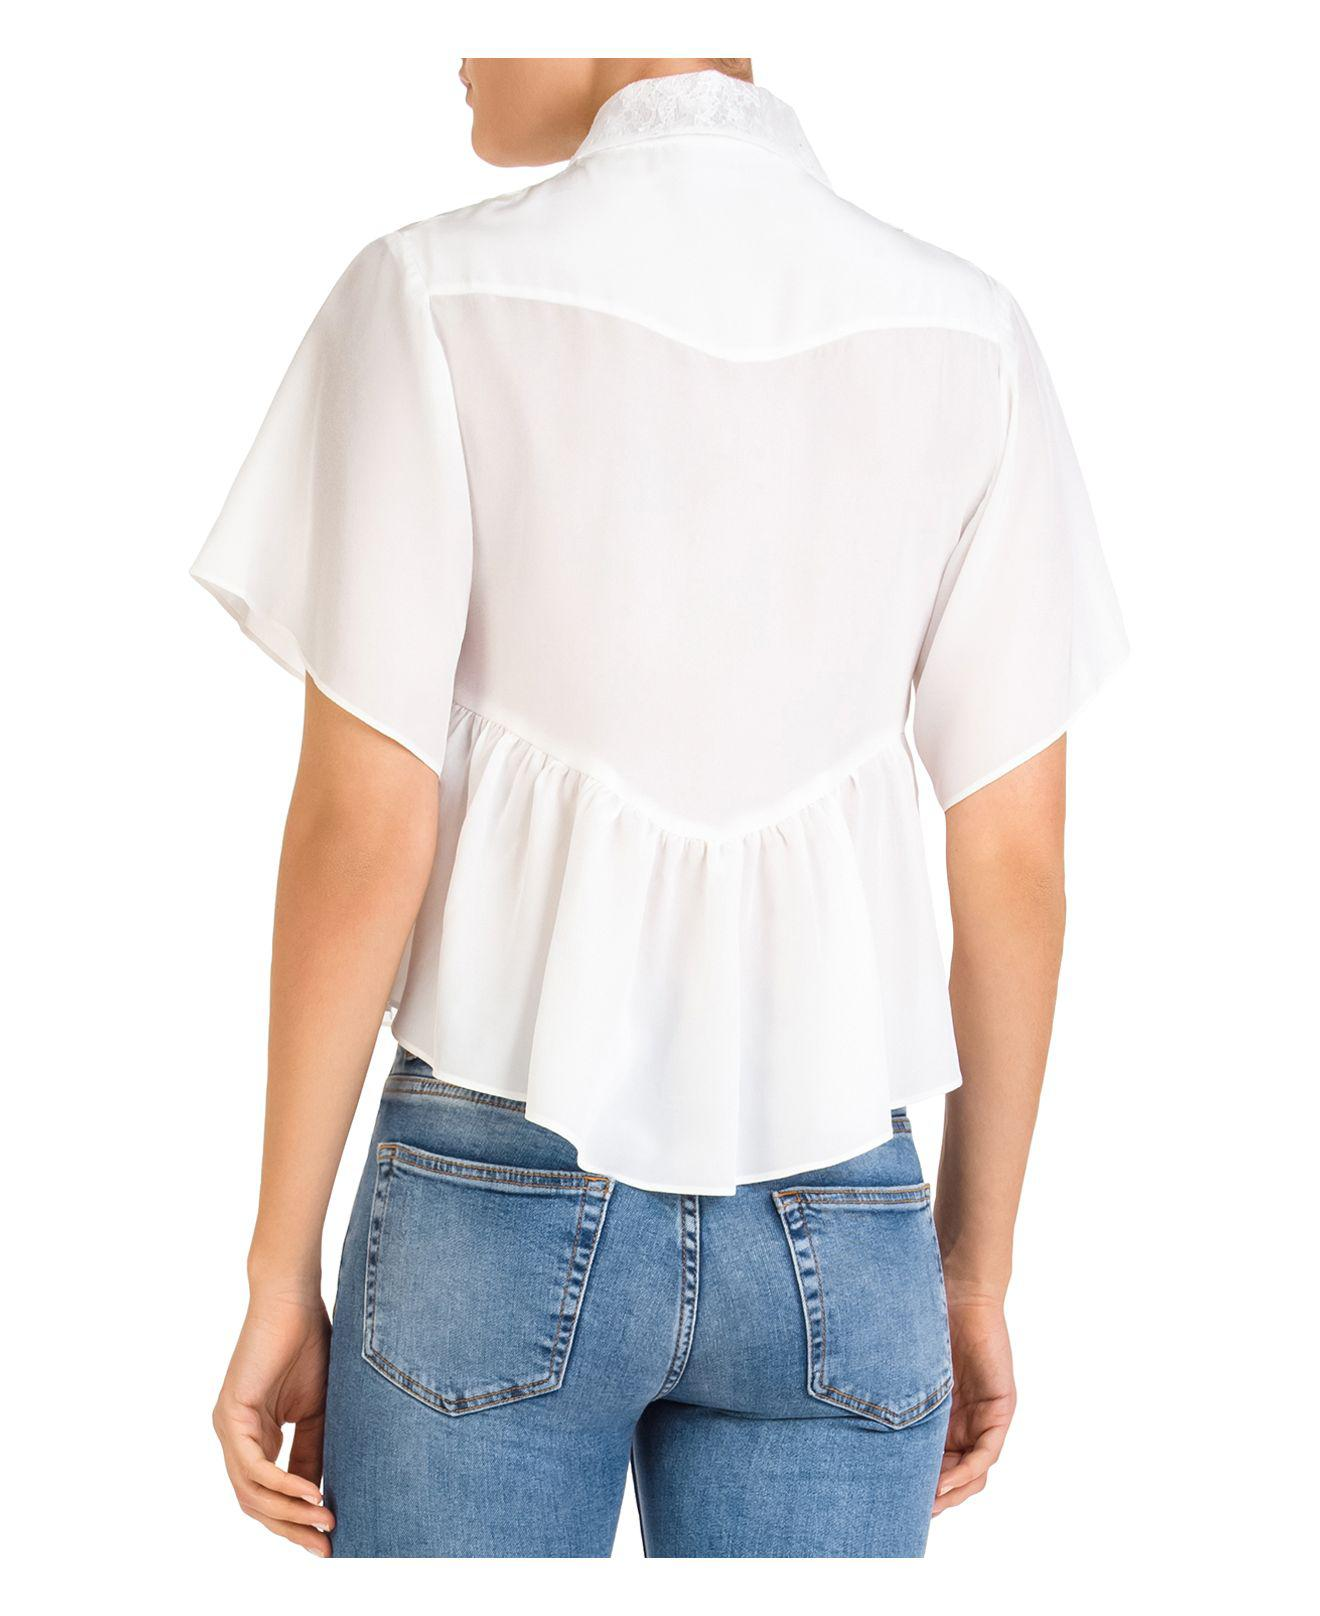 2d0dc546 Lyst - The Kooples Lace-inset Button-down Cropped Top in White